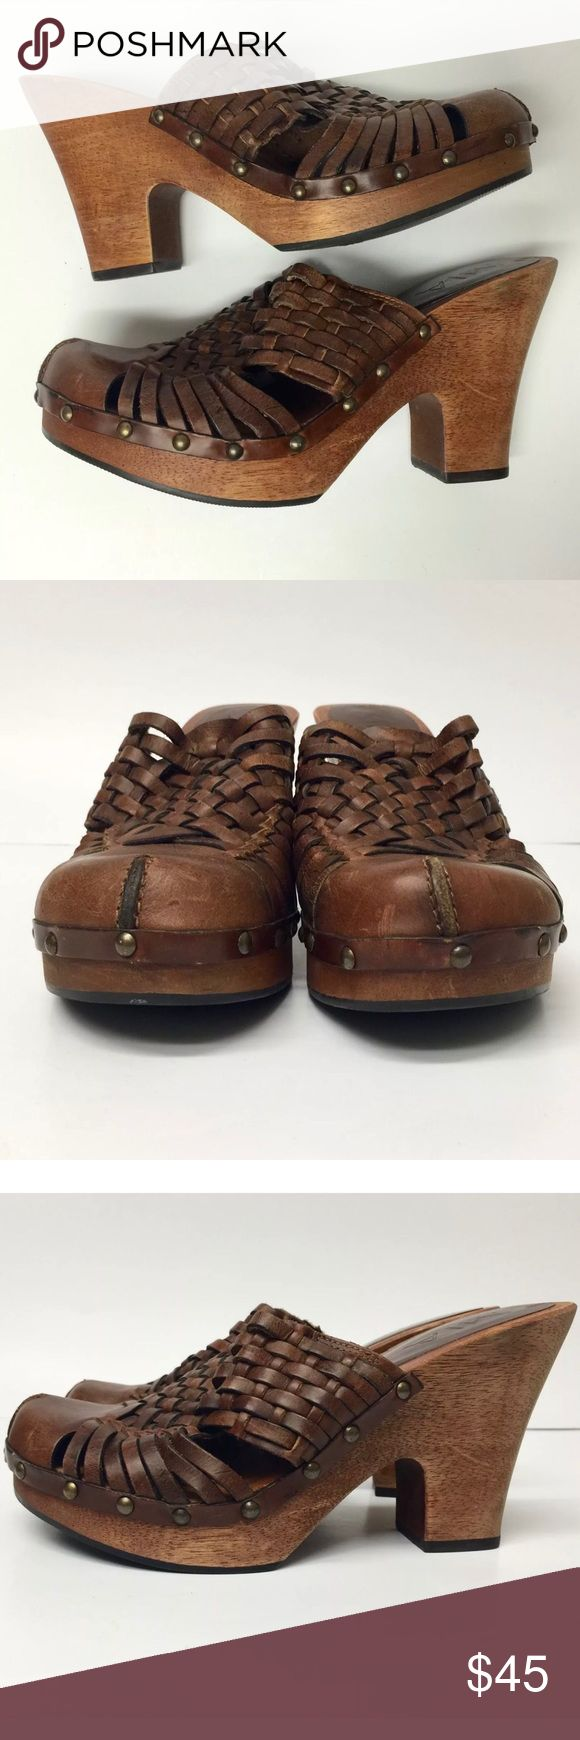 Mia Clogs Huarache Style Heels Woven Leather Mia Clogs Mules Huarache Style Heels Womens Size 6 Casual Woven Leather  Maker- MIA Color- Brown Size- 6 Condition- Good used condition. Normal signs of wear. Please see photos. MIA Shoes Mules & Clogs